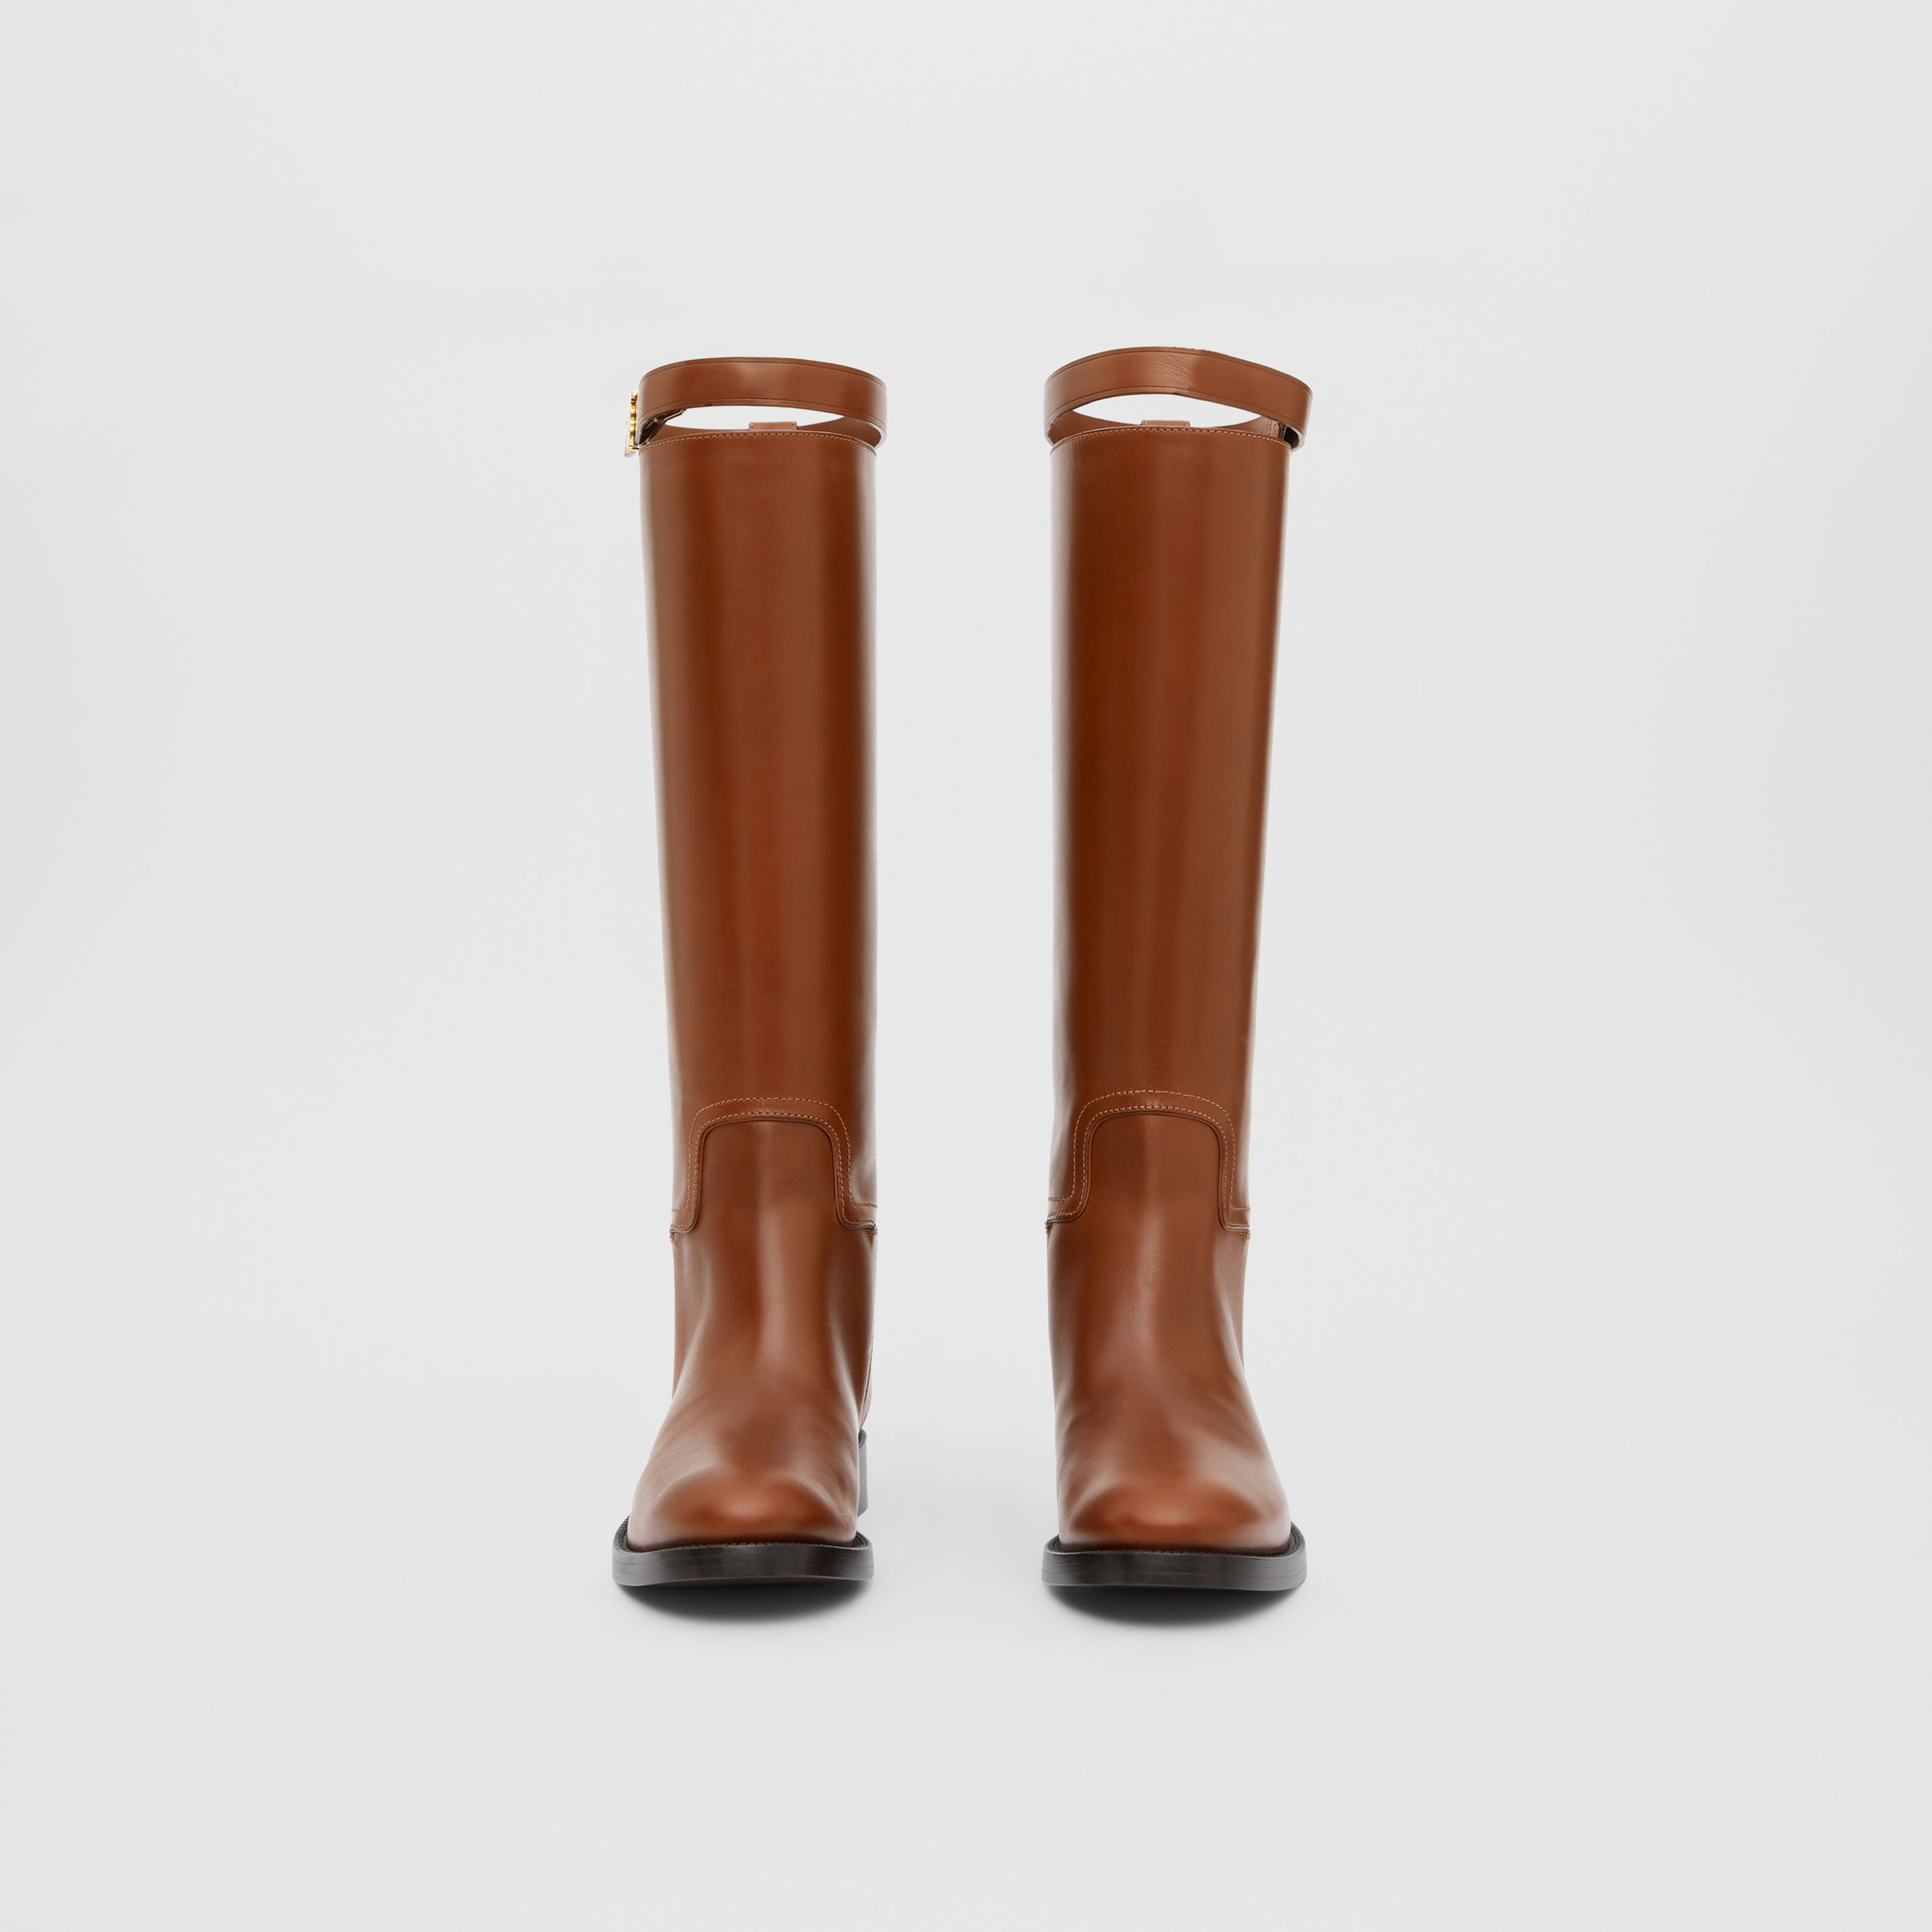 Monogram Motif Leather Knee-high Boots in Tan - Women | Burberry Australia - 4